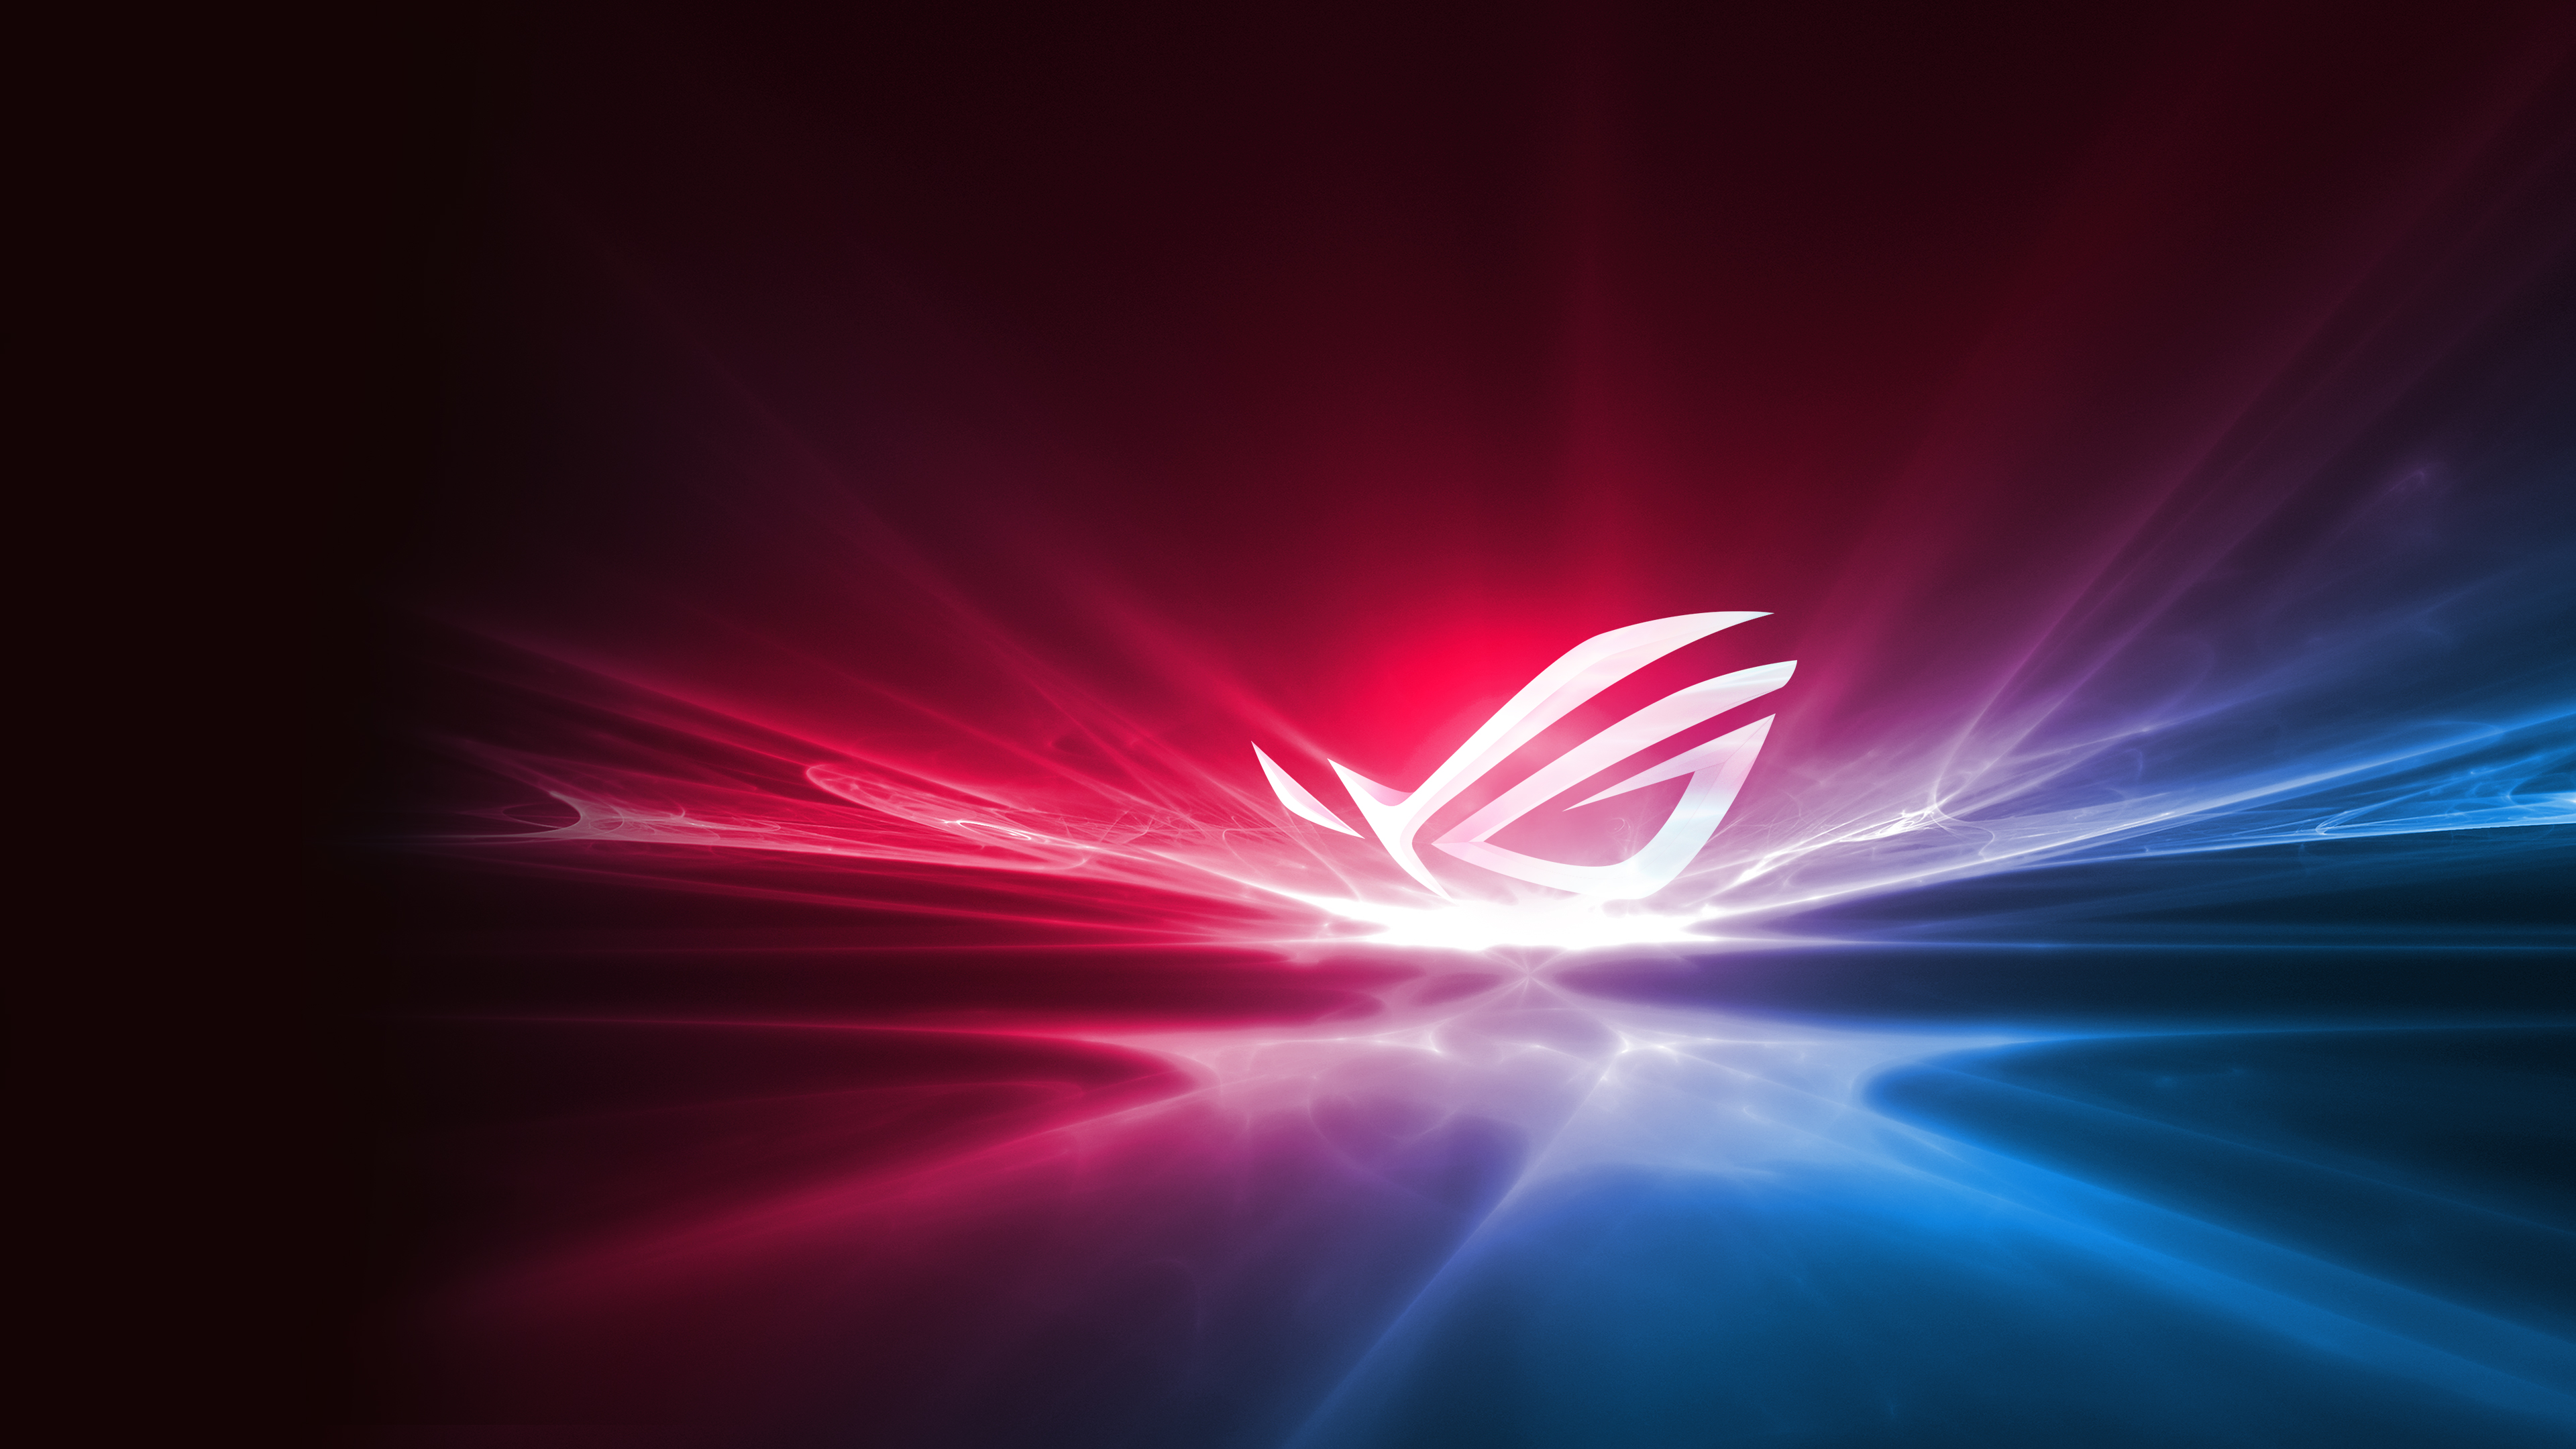 win a rog zephyrus and pg27vq monitor rog wallpaper